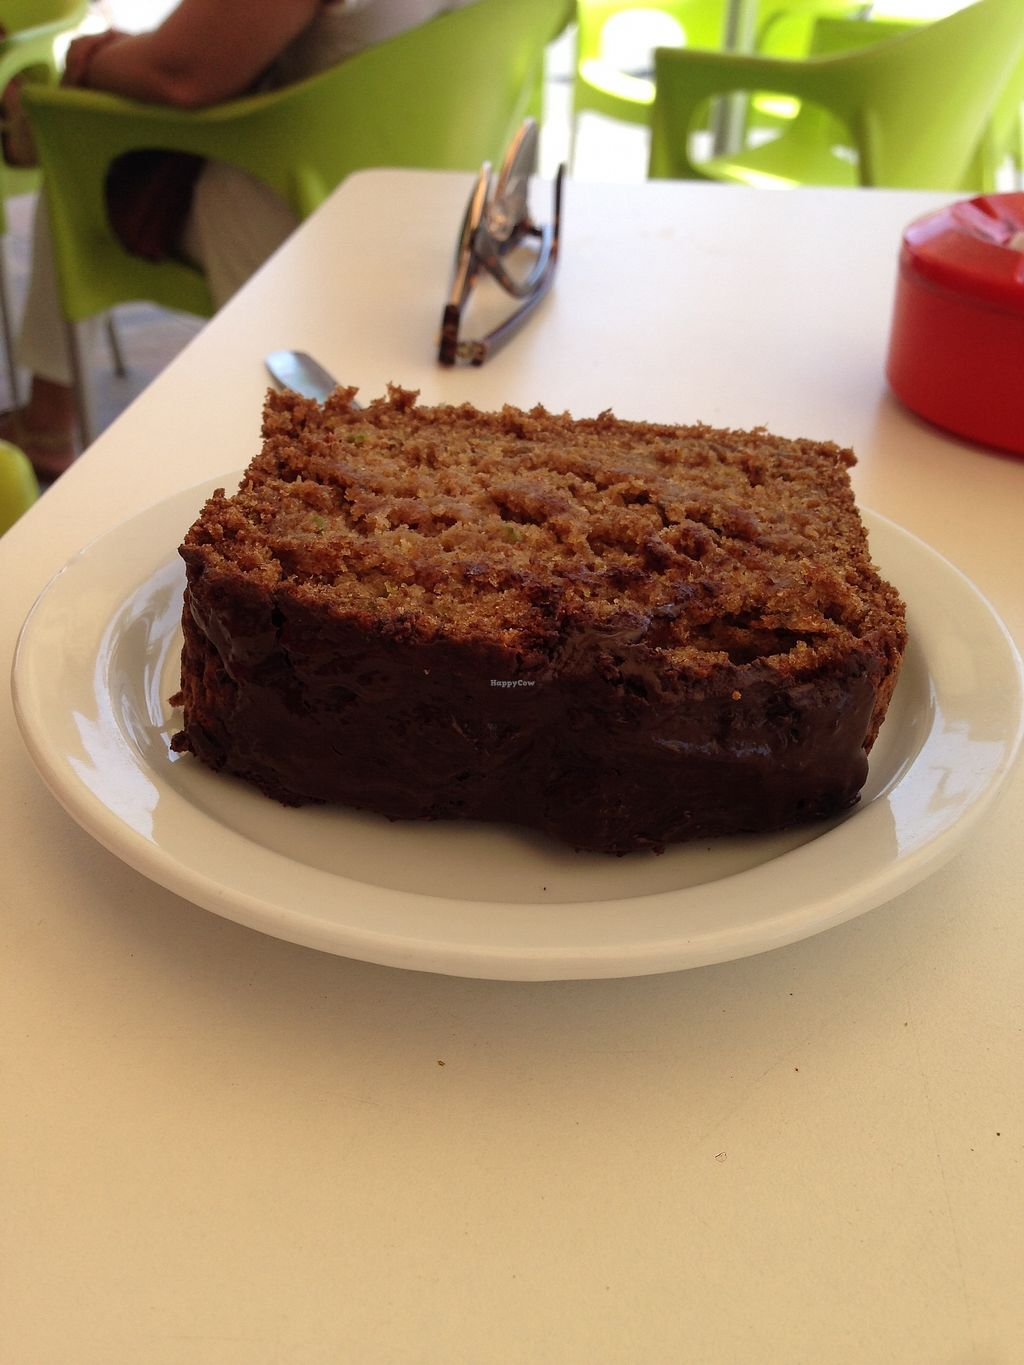 """Photo of Green Tara  by <a href=""""/members/profile/NinaH%C3%B6fmann"""">NinaHöfmann</a> <br/>Chocolate-Zucchini Cake (highly recommend) <br/> July 30, 2017  - <a href='/contact/abuse/image/82837/286741'>Report</a>"""